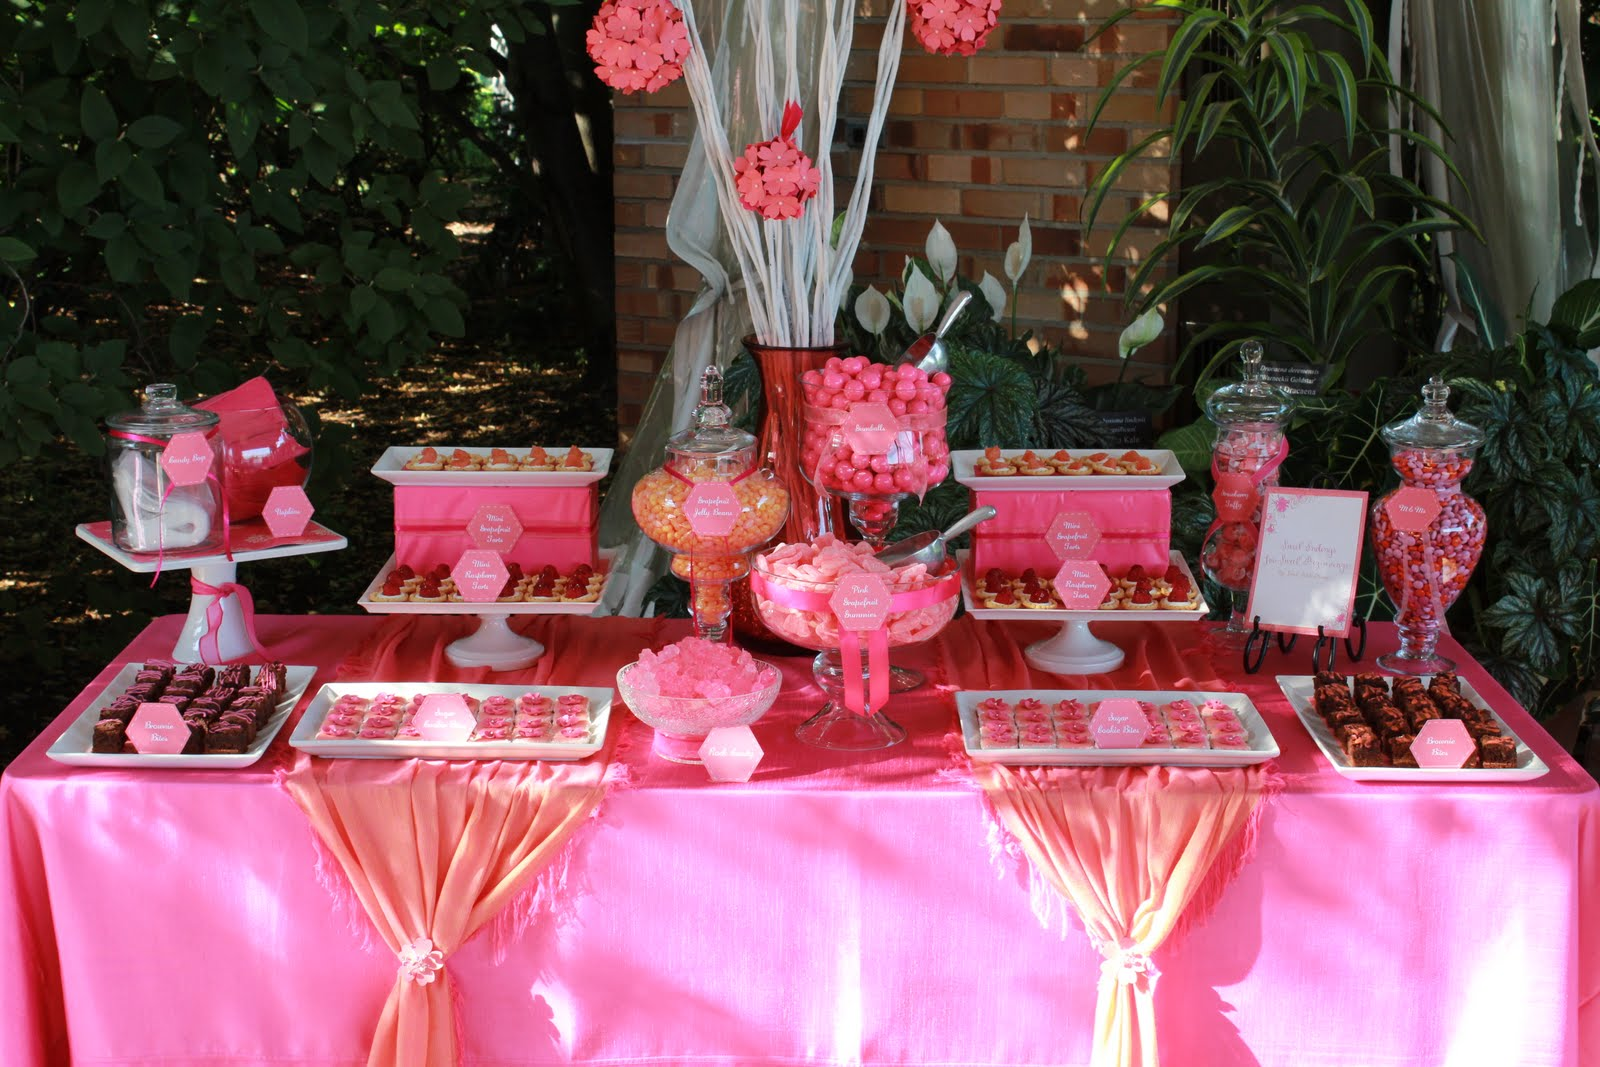 Chicago Botanic Garden Wedding Sweet Table